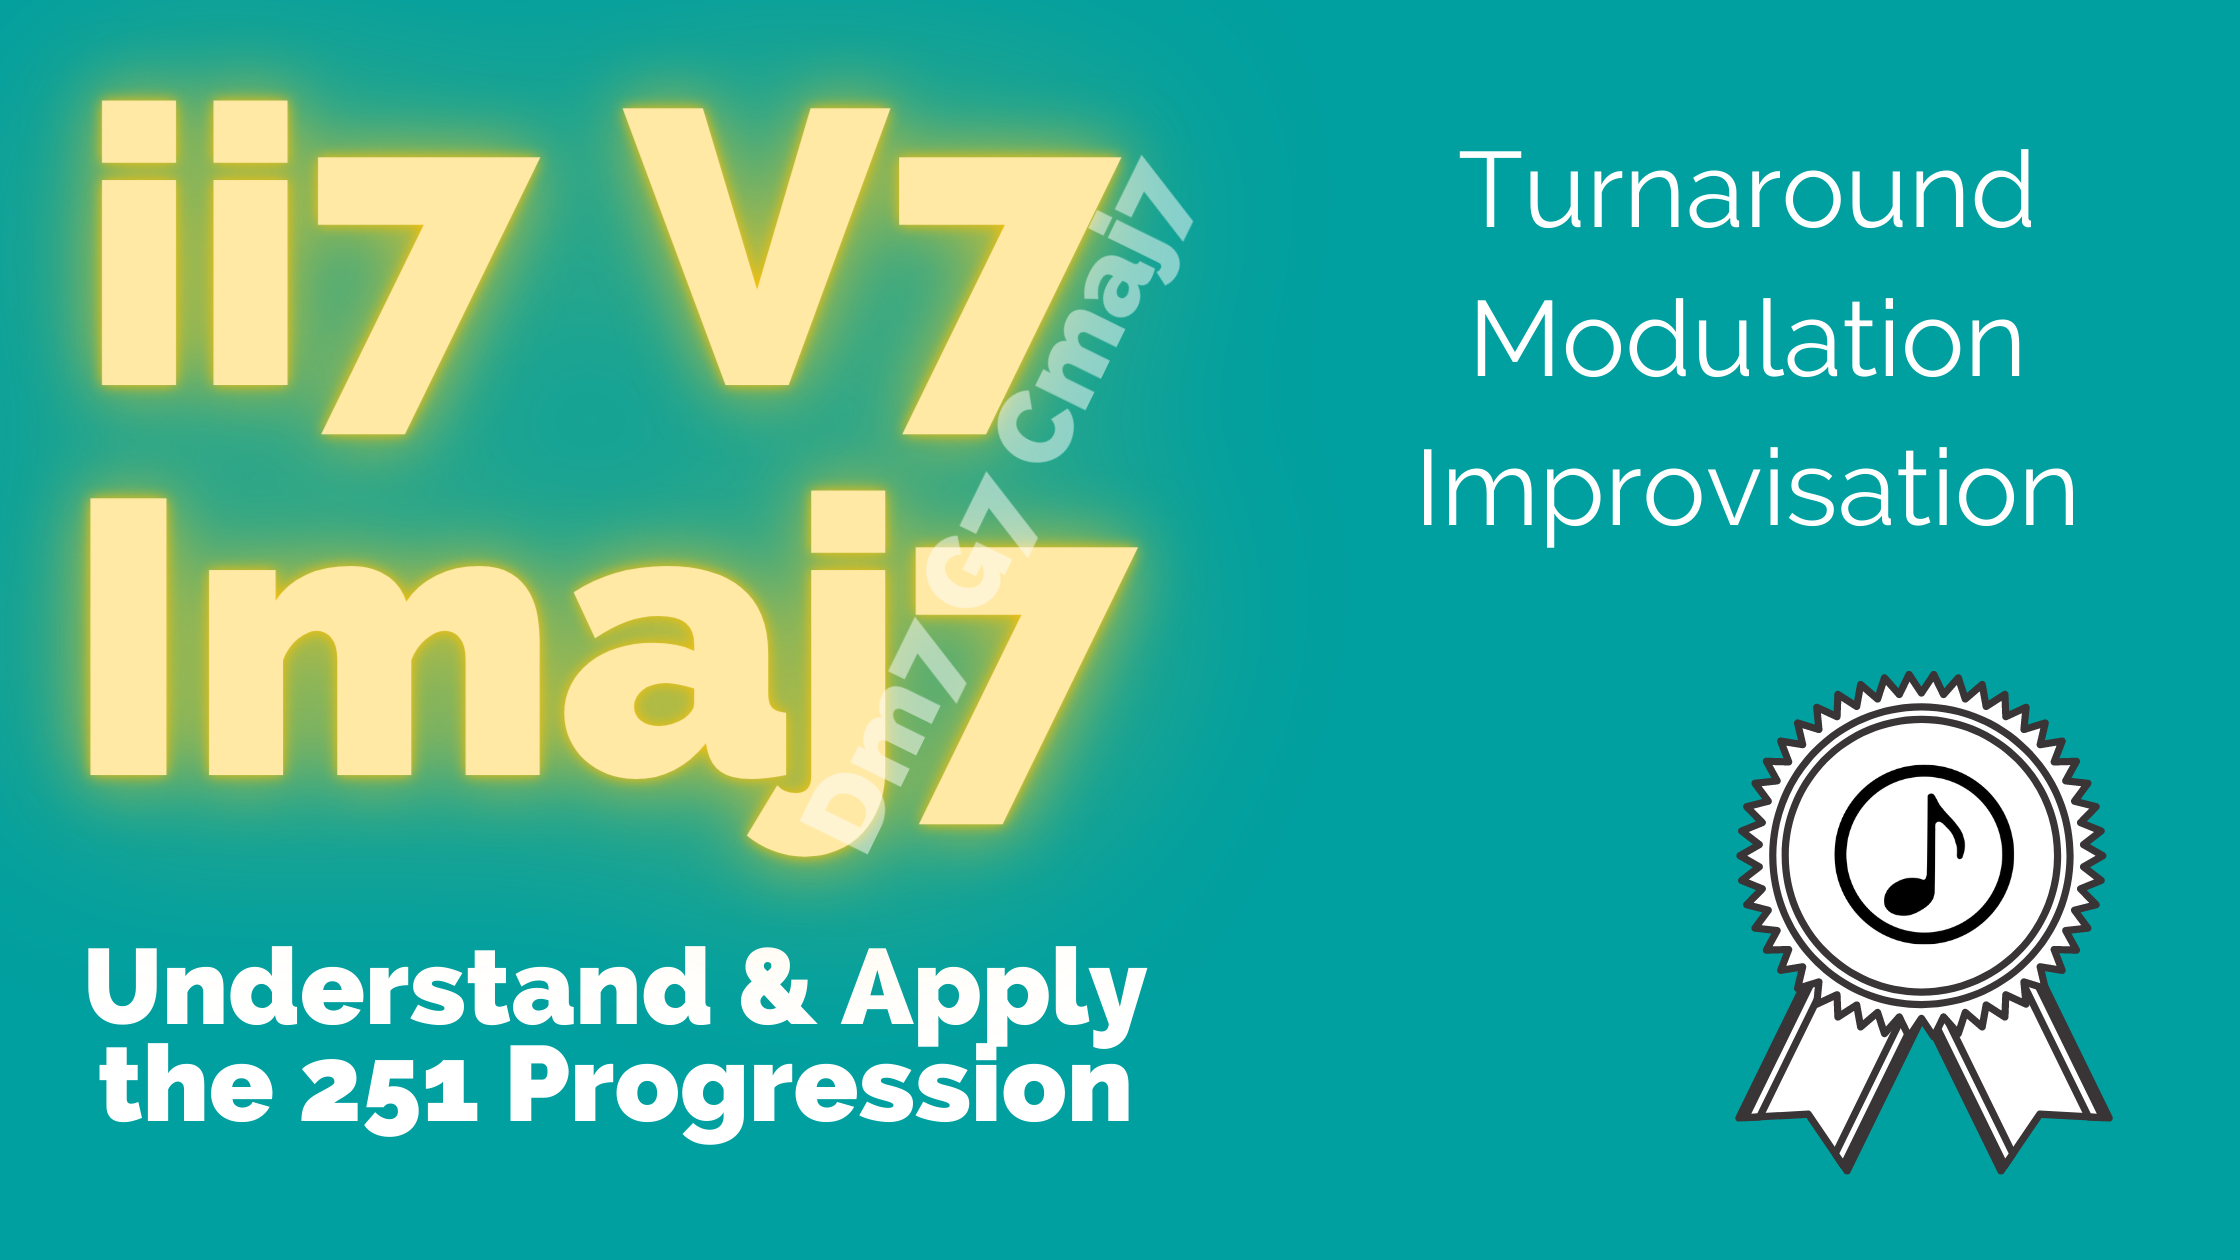 The 251 turnaround (aka ii-V-I)